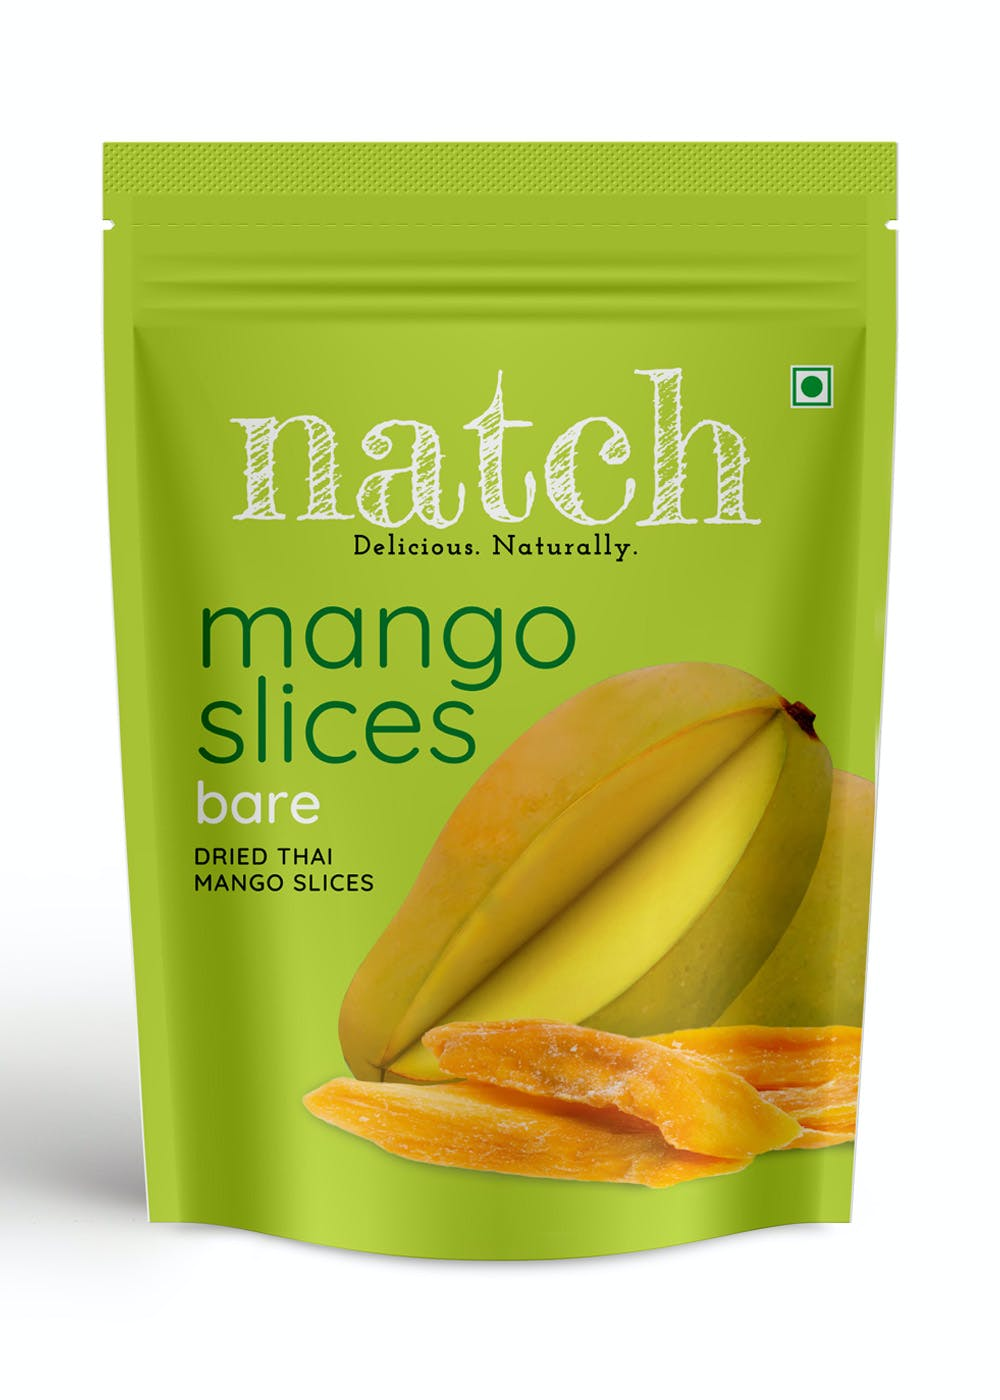 Dried Thai Mango Slices: Bare - Pack of 3 (150g Each)